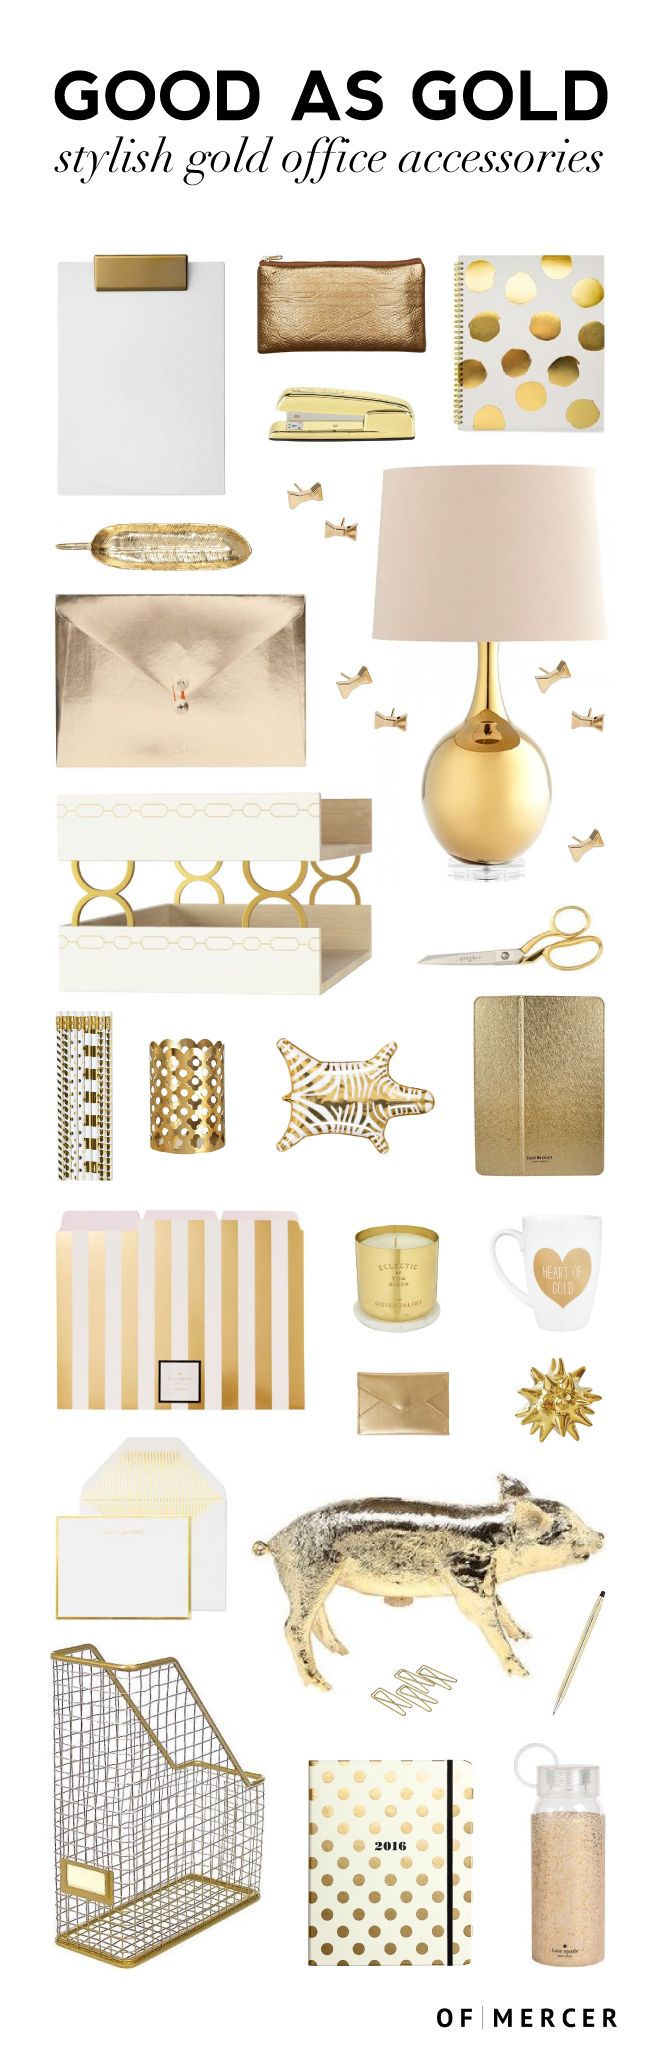 Good as Gold: Stylish Gold Office Accessories  Decor, Gold office